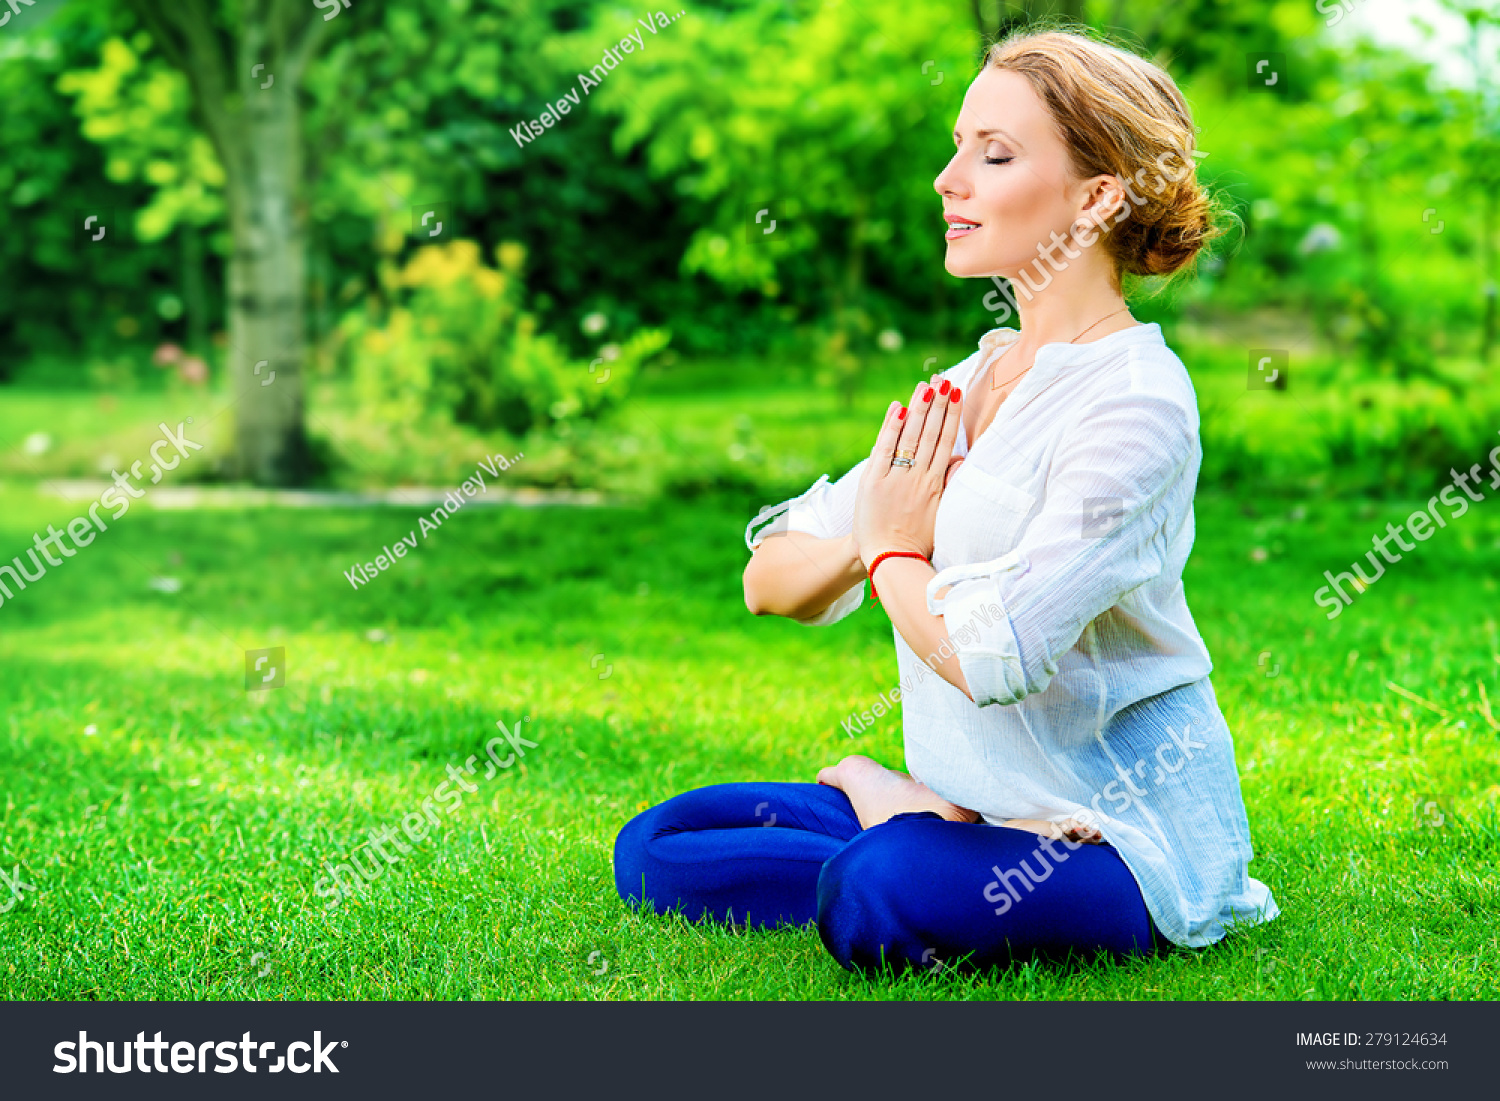 Stock Photo Beautiful Young Woman Doing Yoga In The Summer Park Healthy Lifestyle Yoga Lotus Pose 279124634 B F Ascher Company Inc